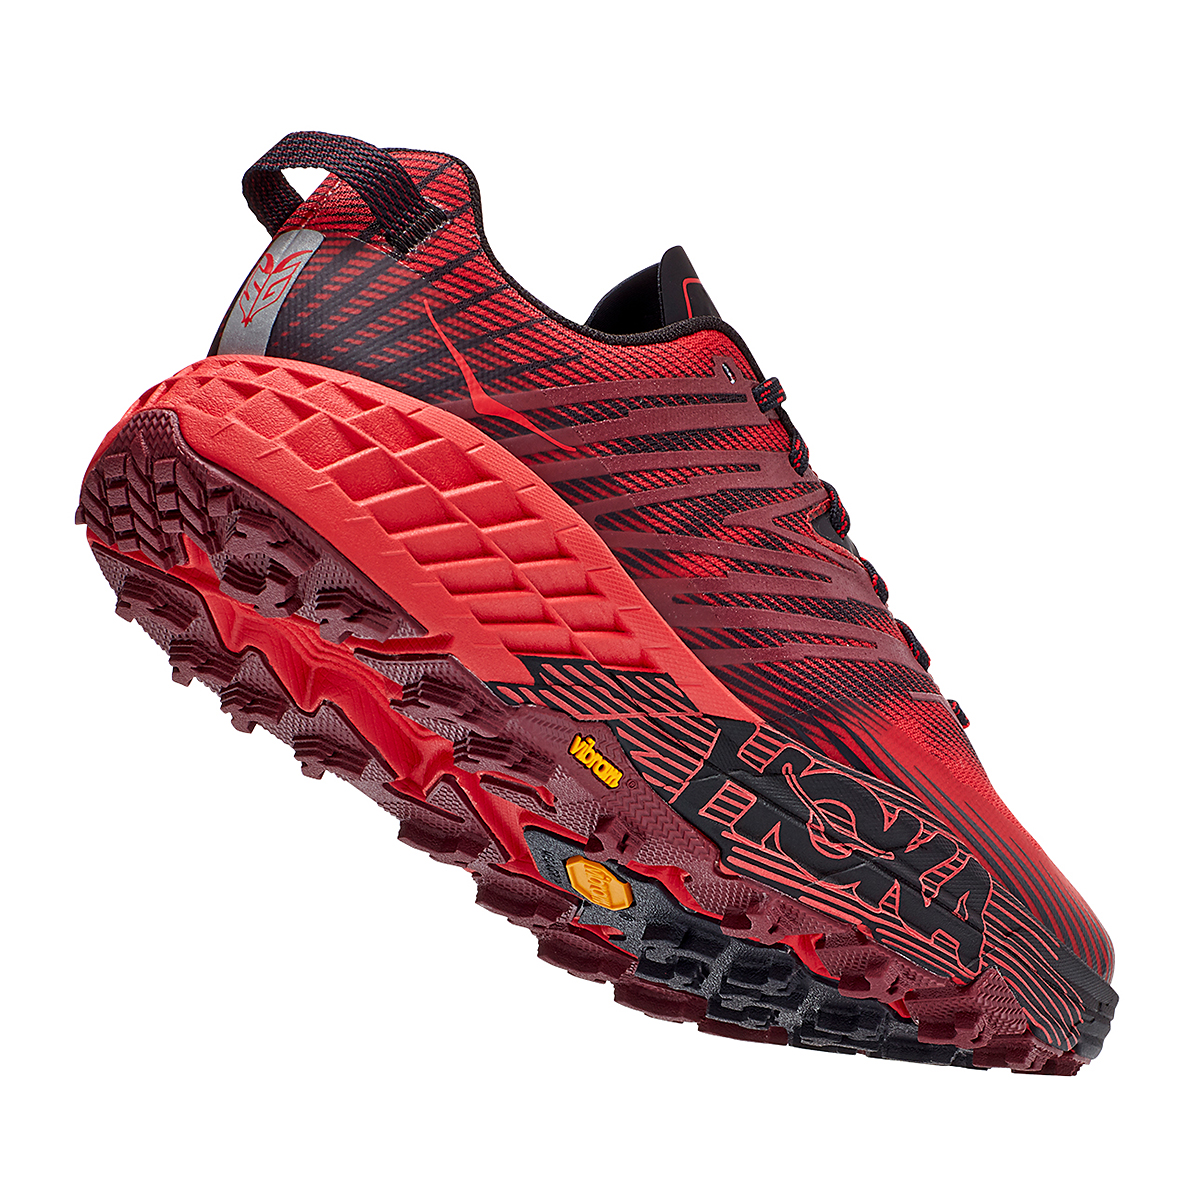 Men's Hoka One One Speedgoat 4 Trail Running Shoe - Color: Cordovan/High Risk Red - Size: 7 - Width: Regular, Cordovan/High Risk Red, large, image 4